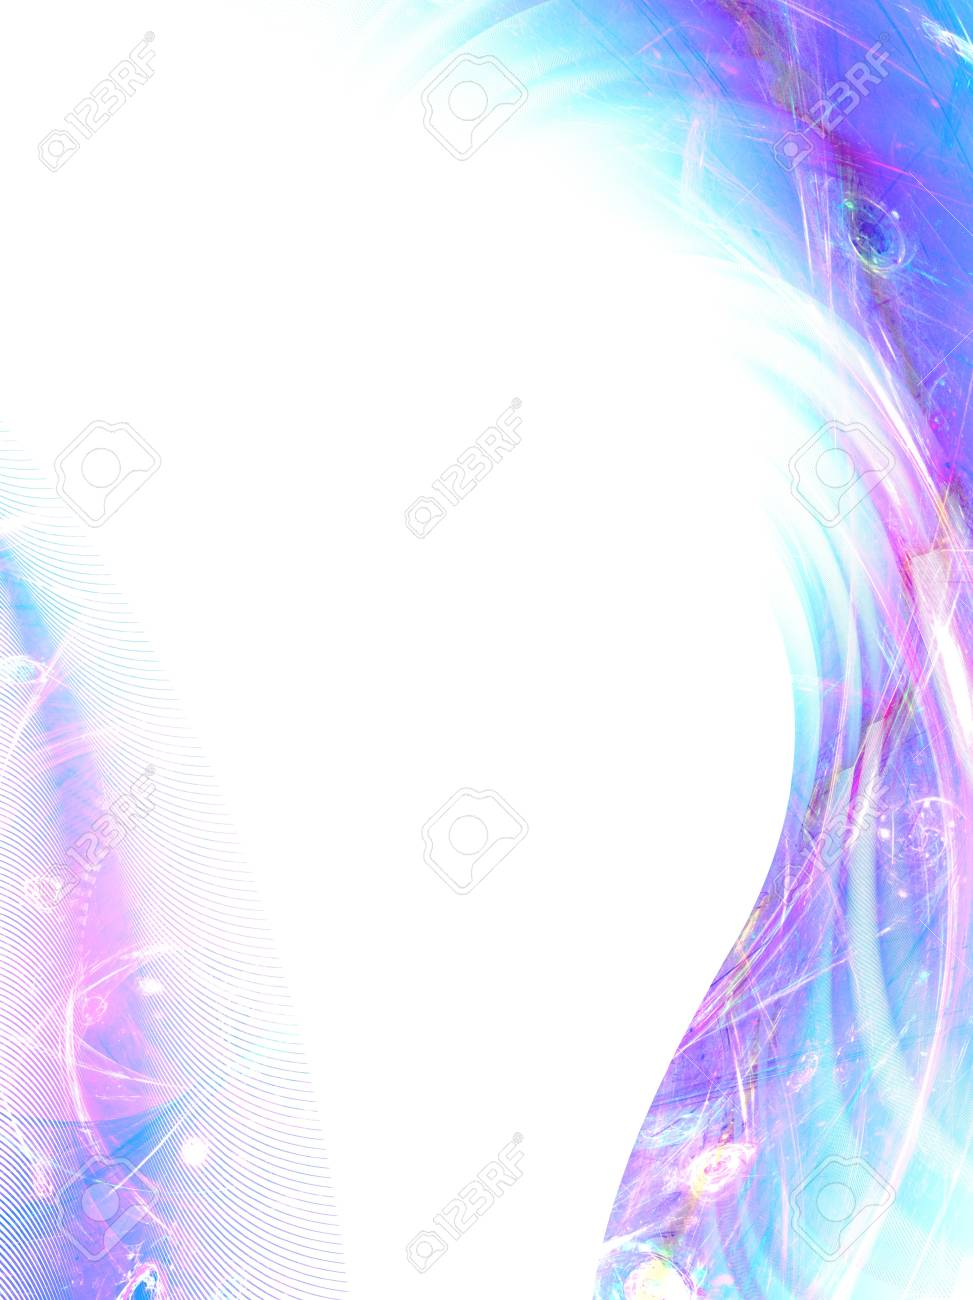 beautiful abstract fantasy composition with blur effect Stock Photo - 15297843